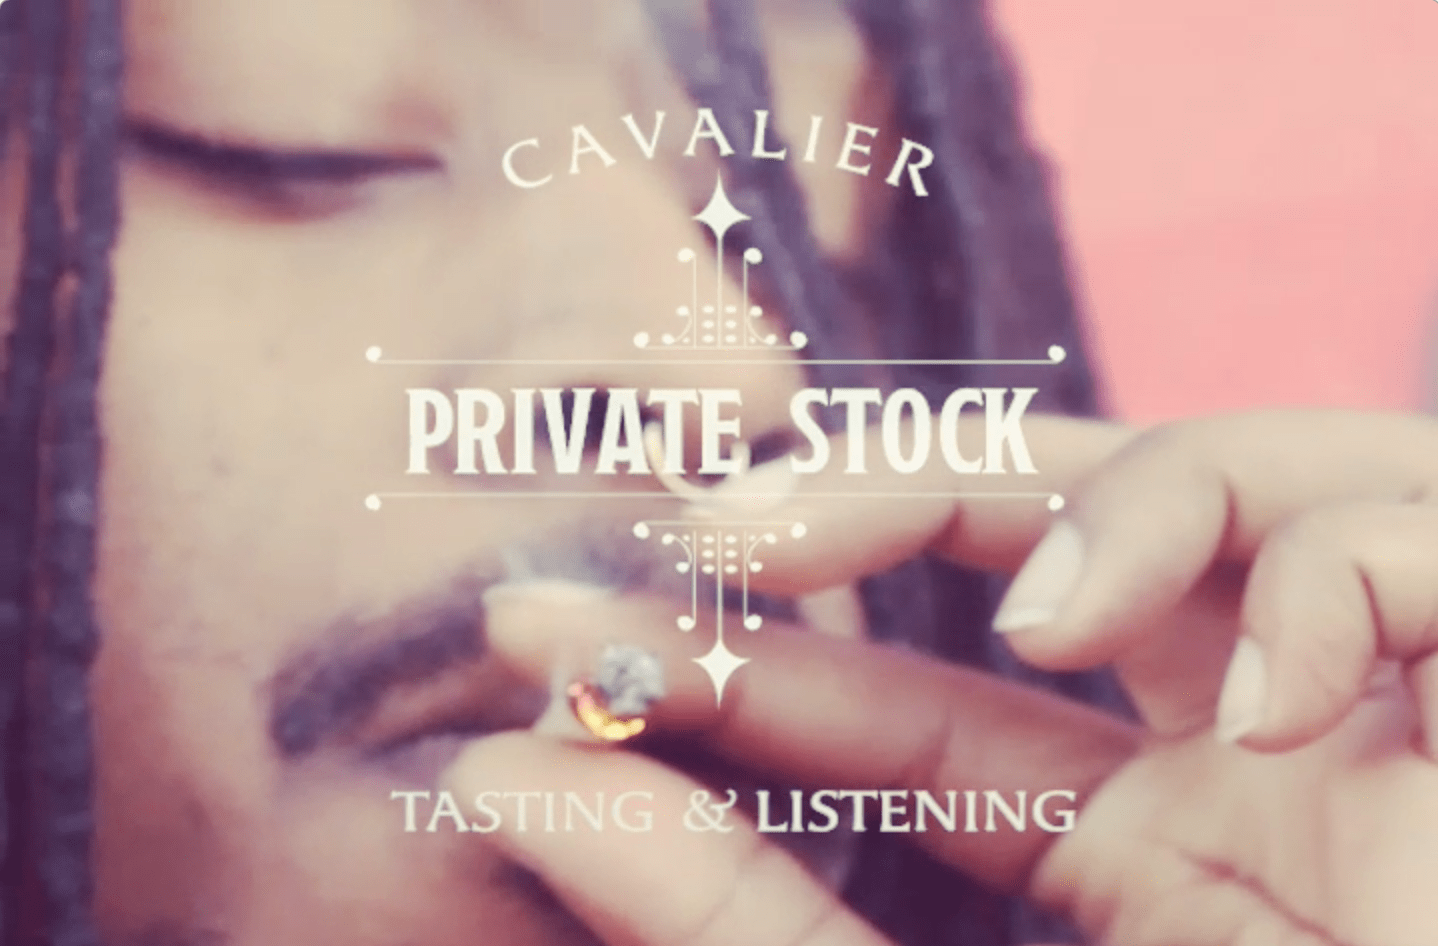 Stay Gold Sesh Presents: Private Stock